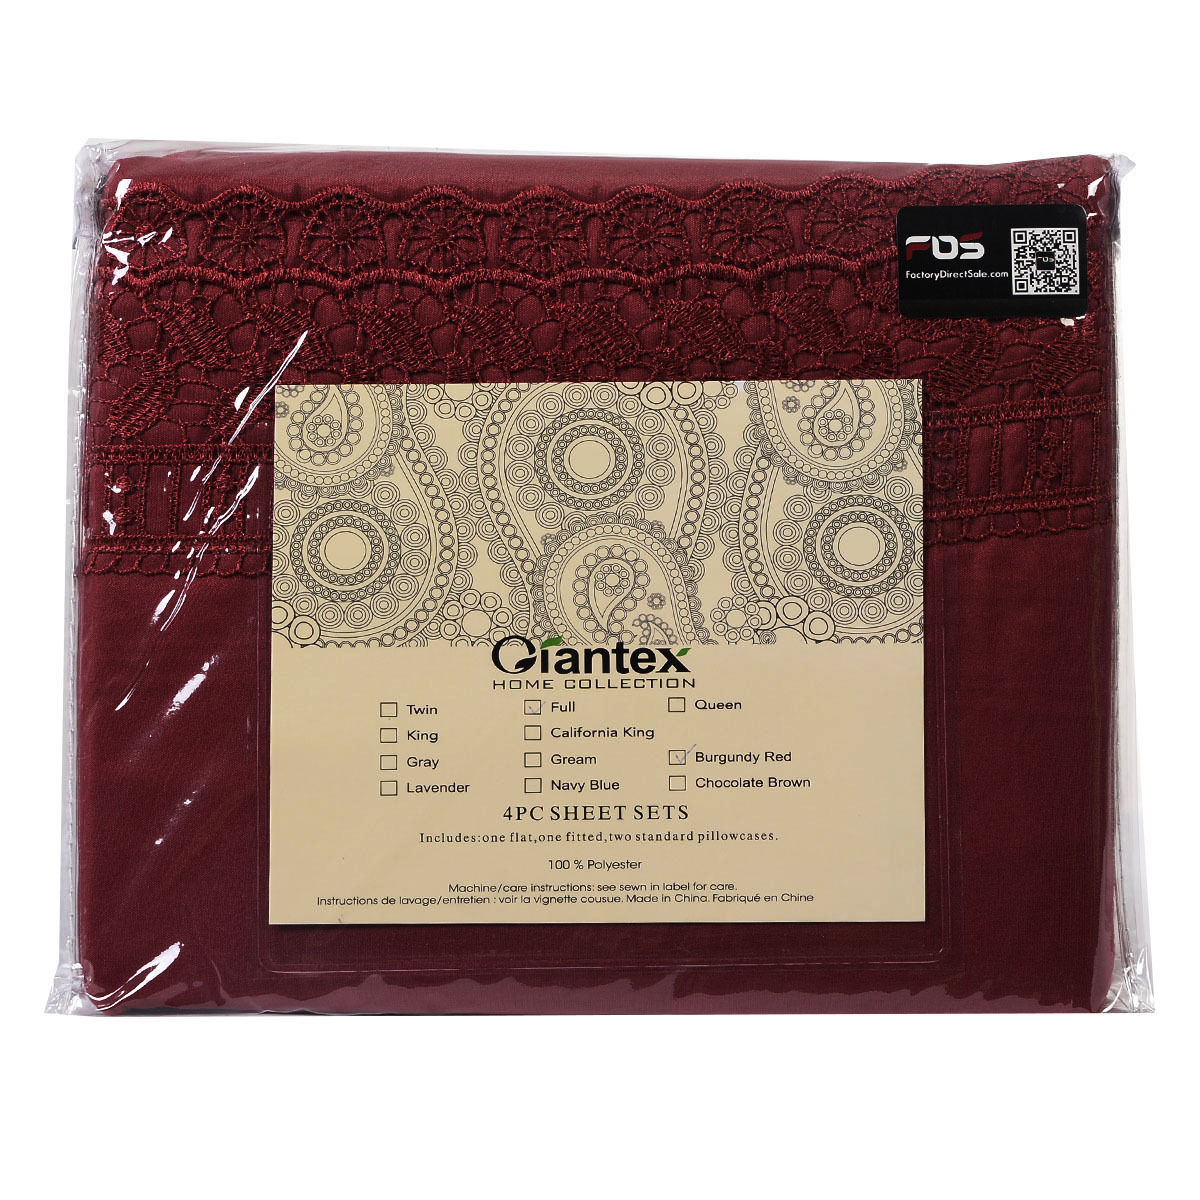 1600-Count-4-Piece-Bed-Sheet-Set-Deep-Pocket-6-Color-5-Size-Chemical-Lace-New thumbnail 7